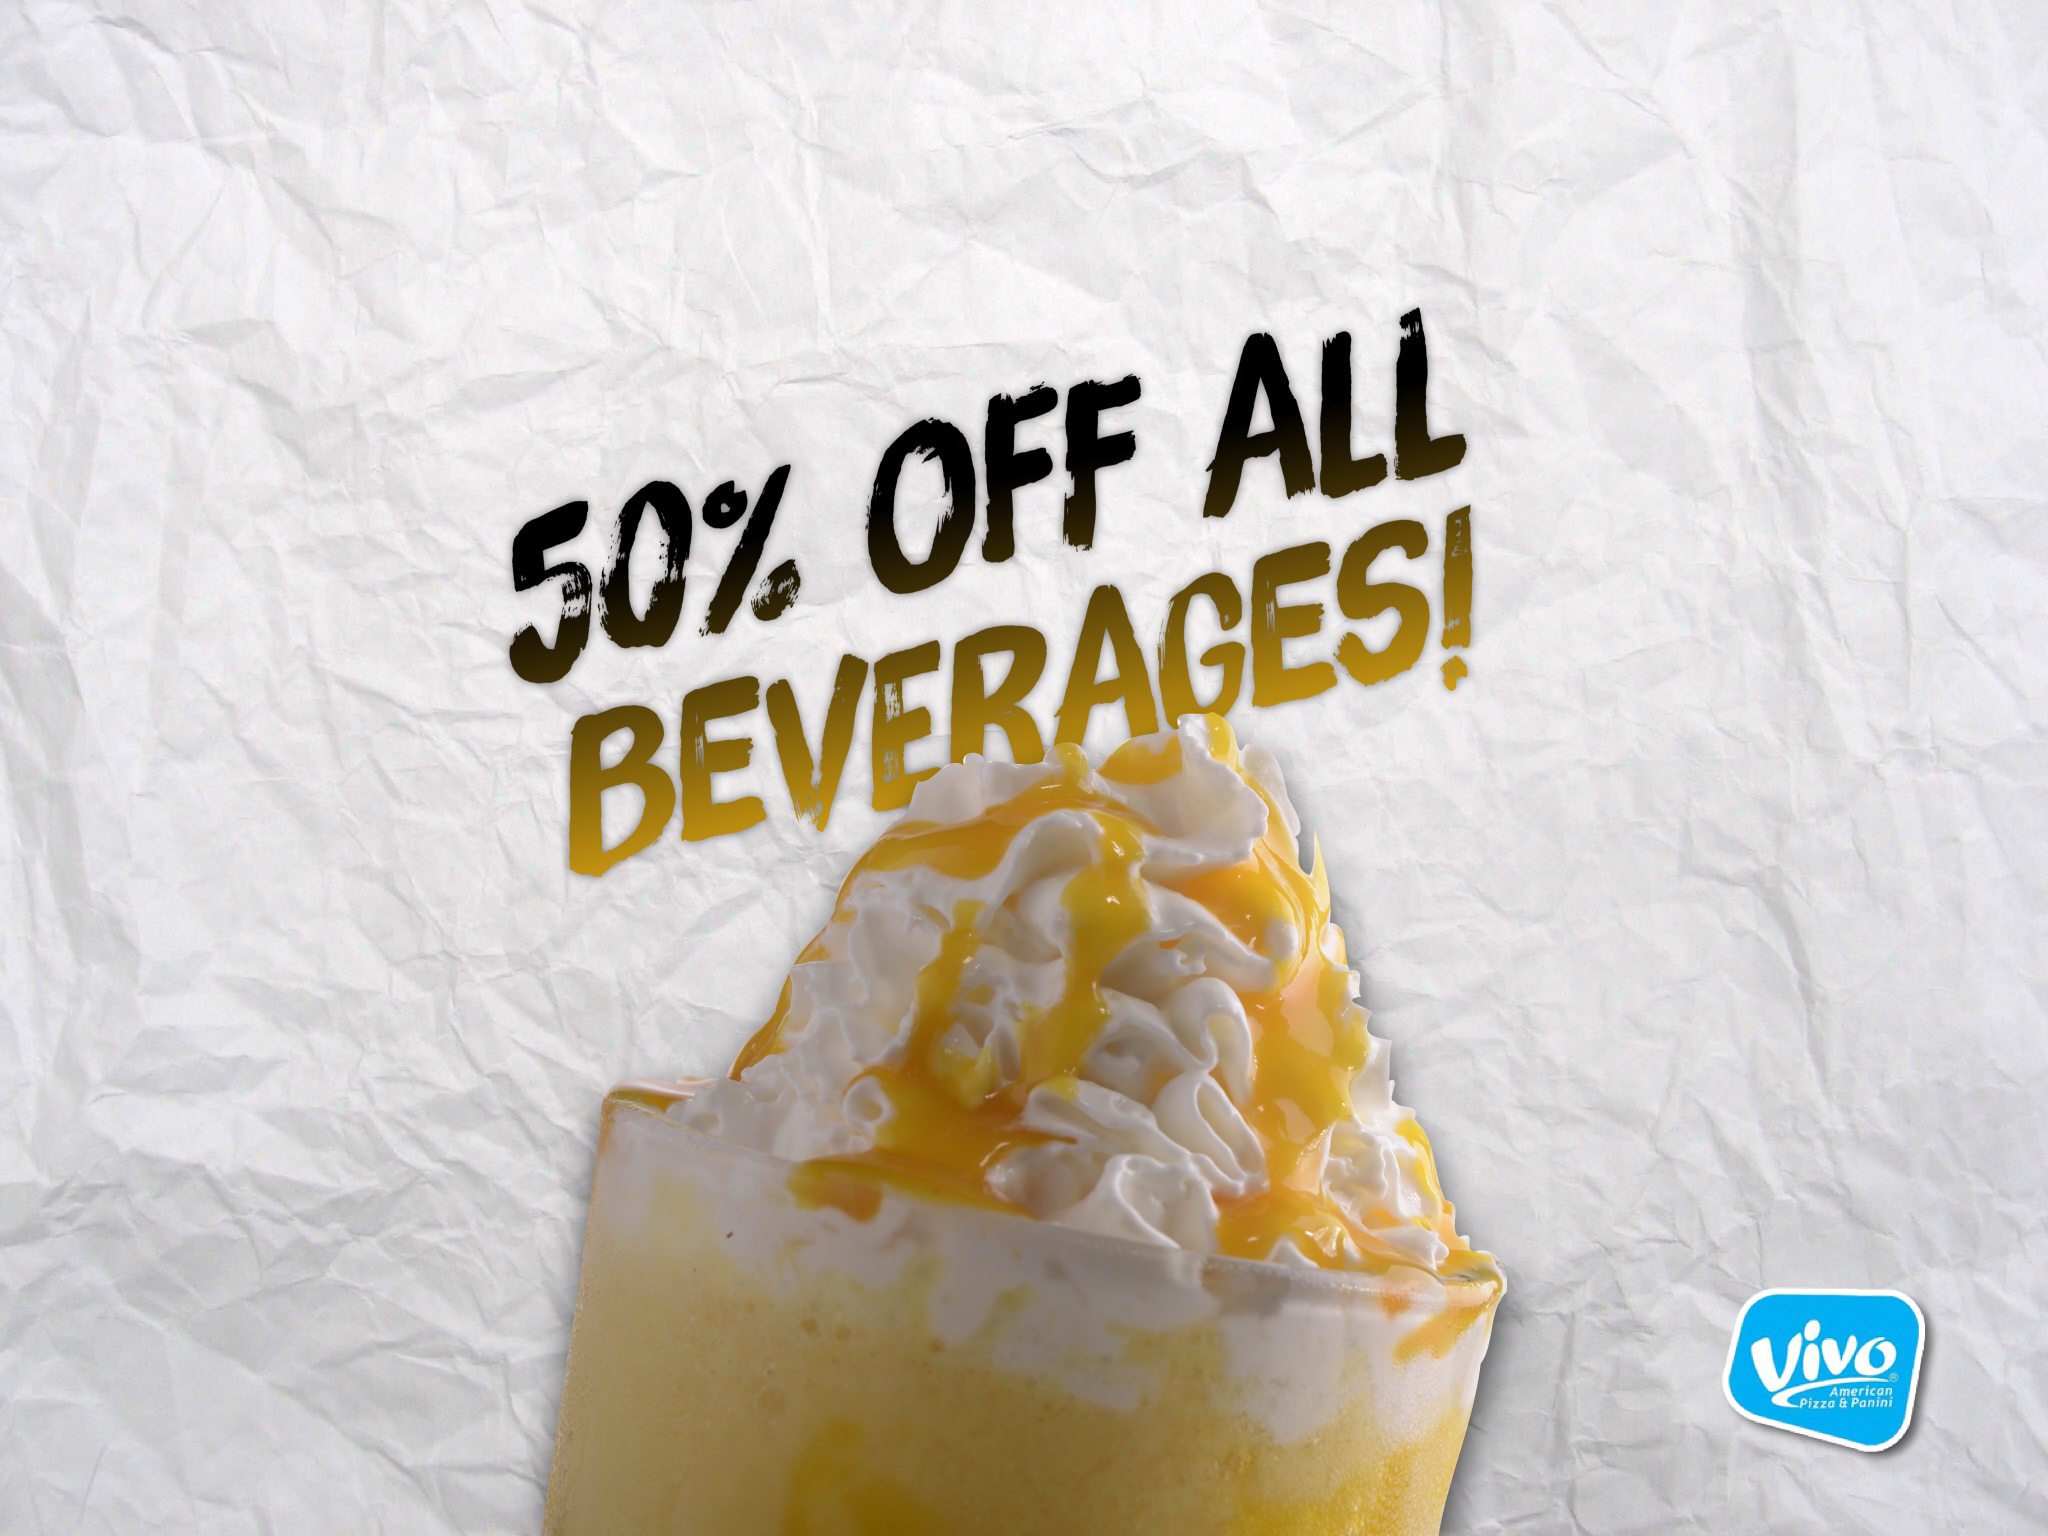 50% off all beverages